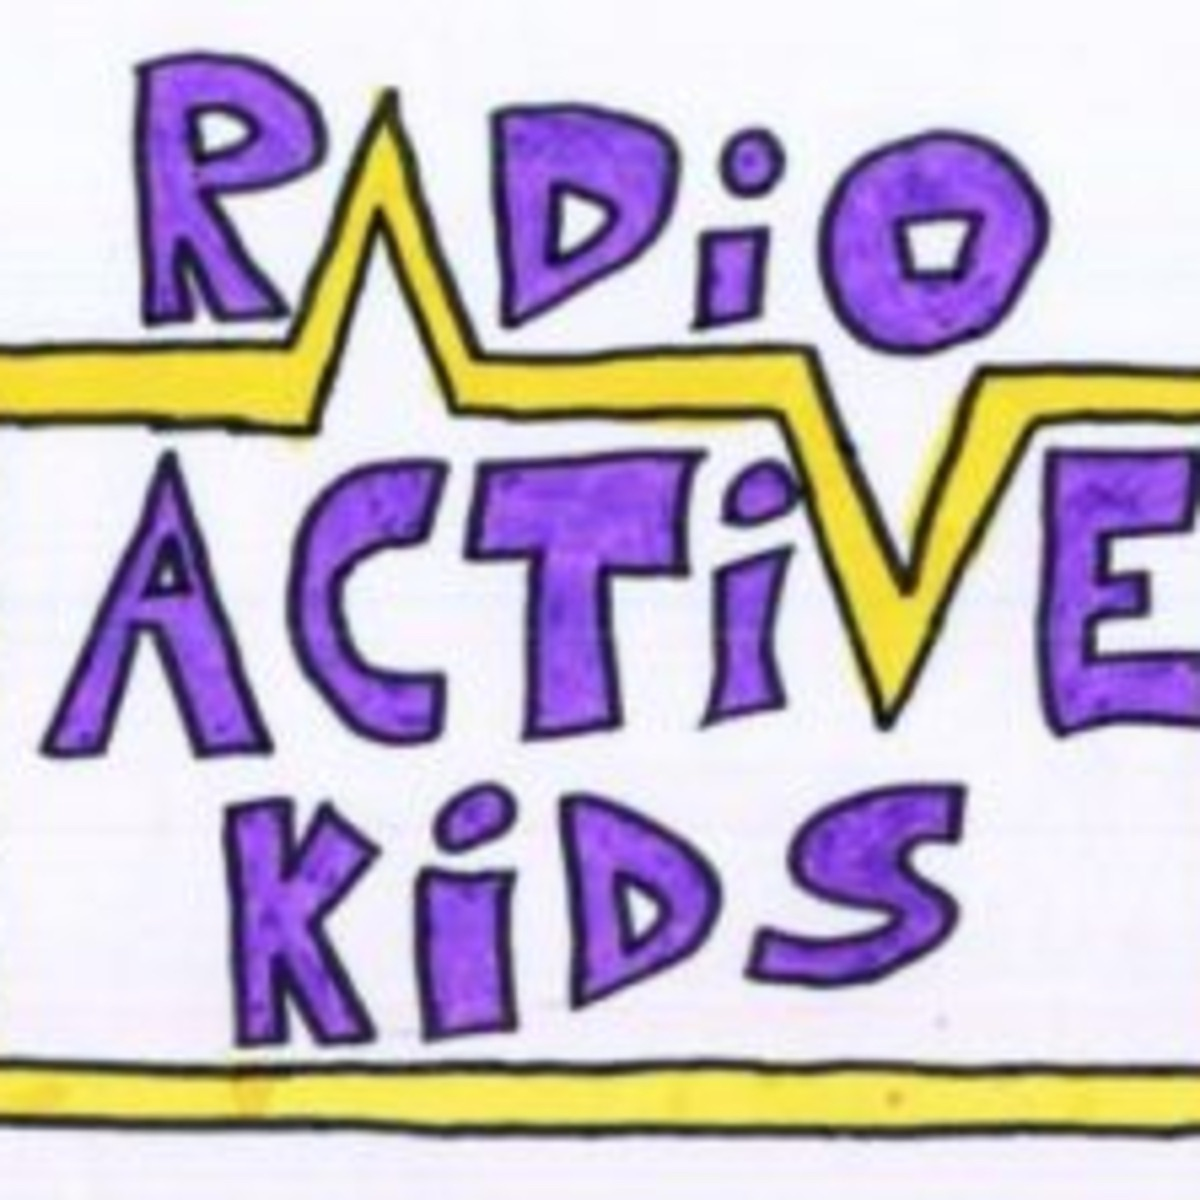 Radio Active Kids